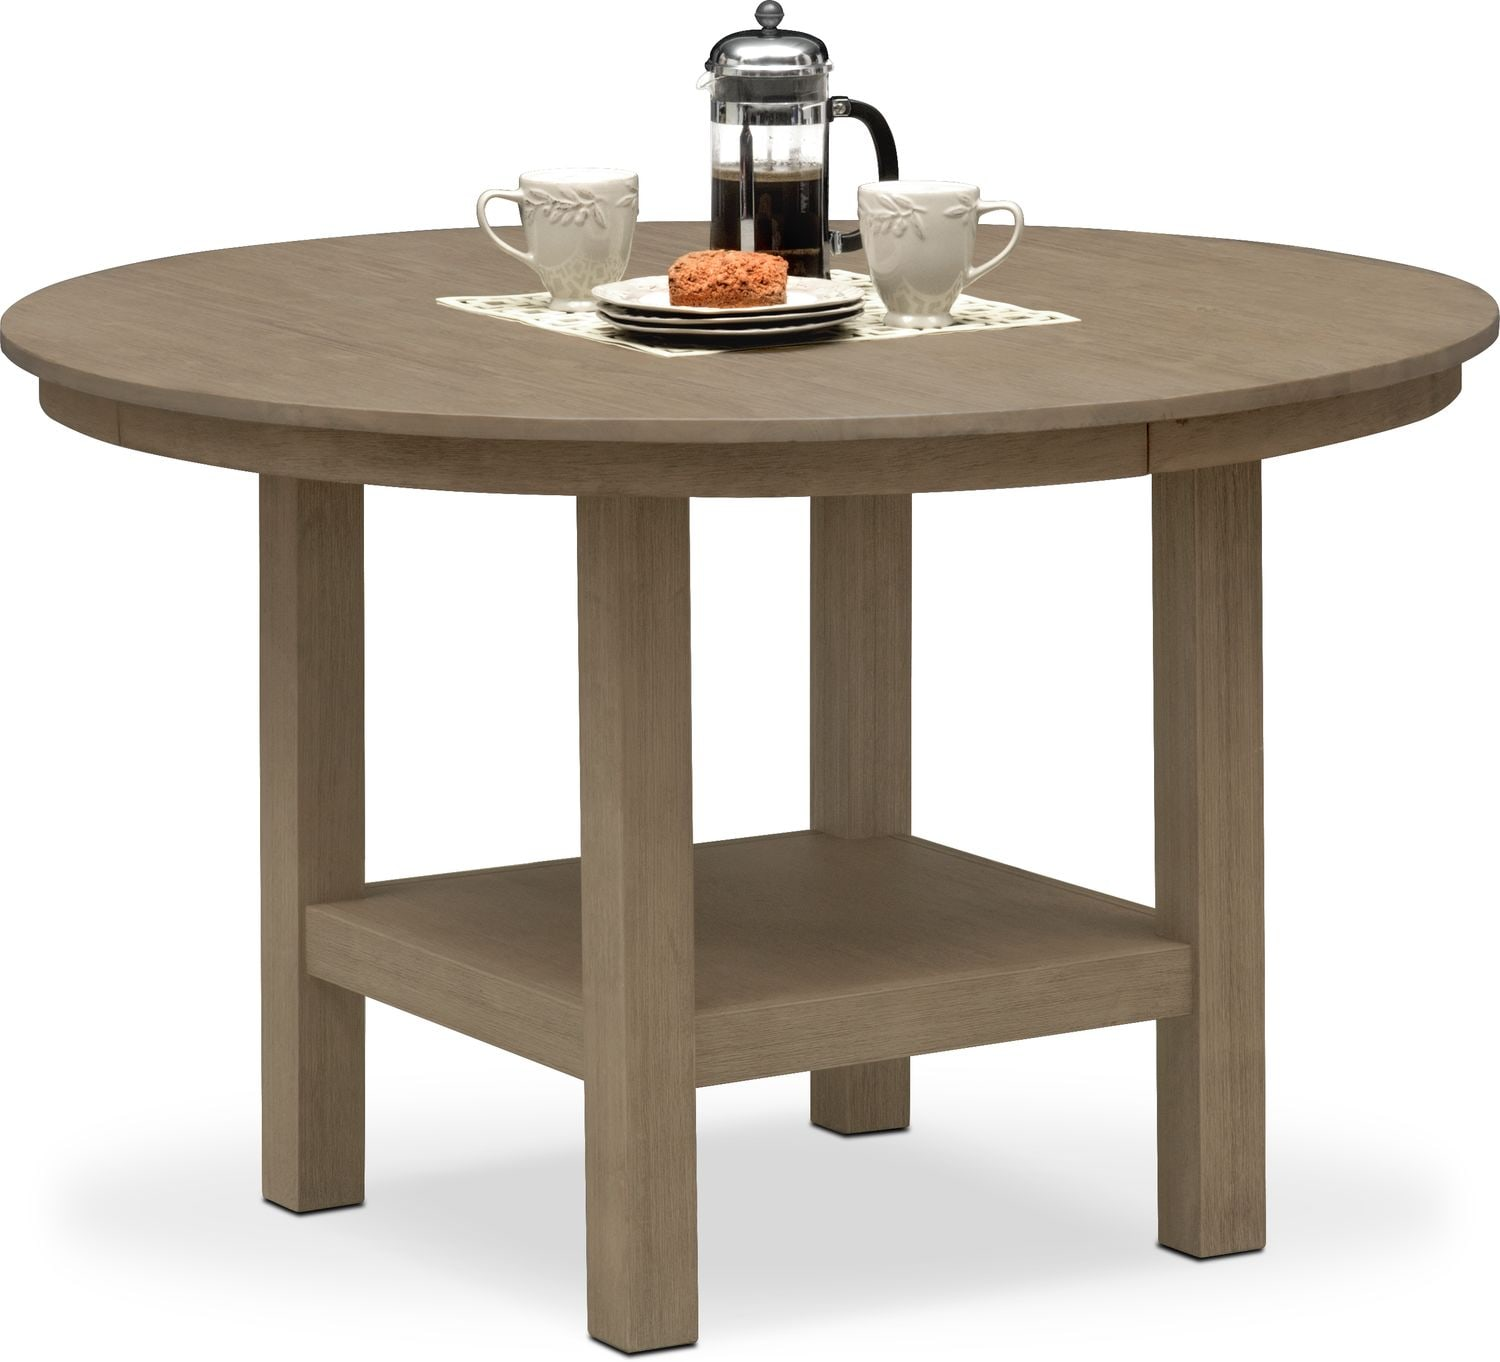 Dining Room Furniture - Tribeca Round Dining Table - Gray